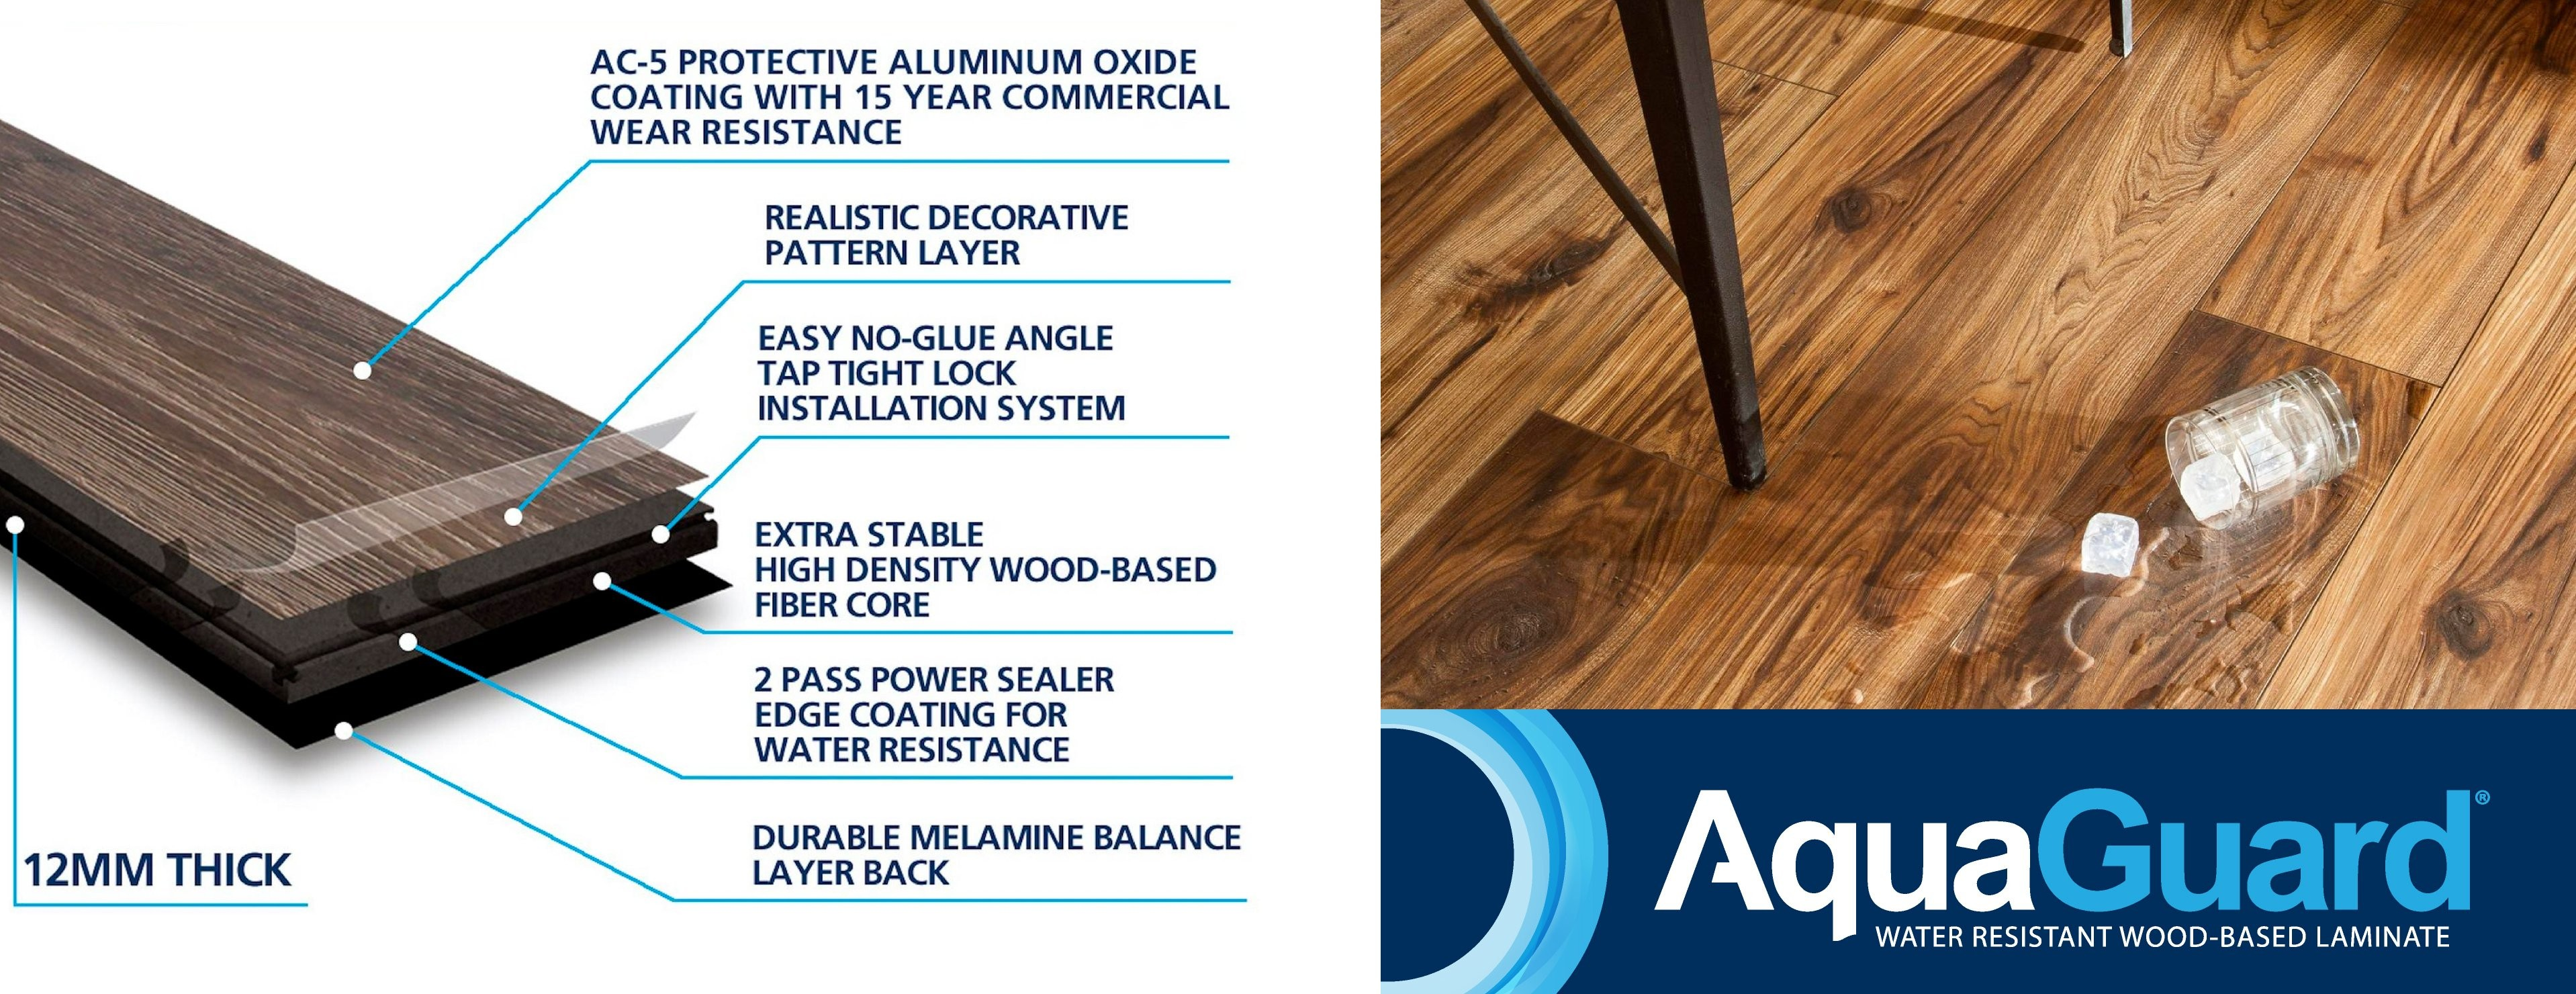 It Can Also Be Installed In An Area 4x The Size Of Traditional Laminates Without Need For Transitions Floors Come With Lifetime Residential And 15 Year